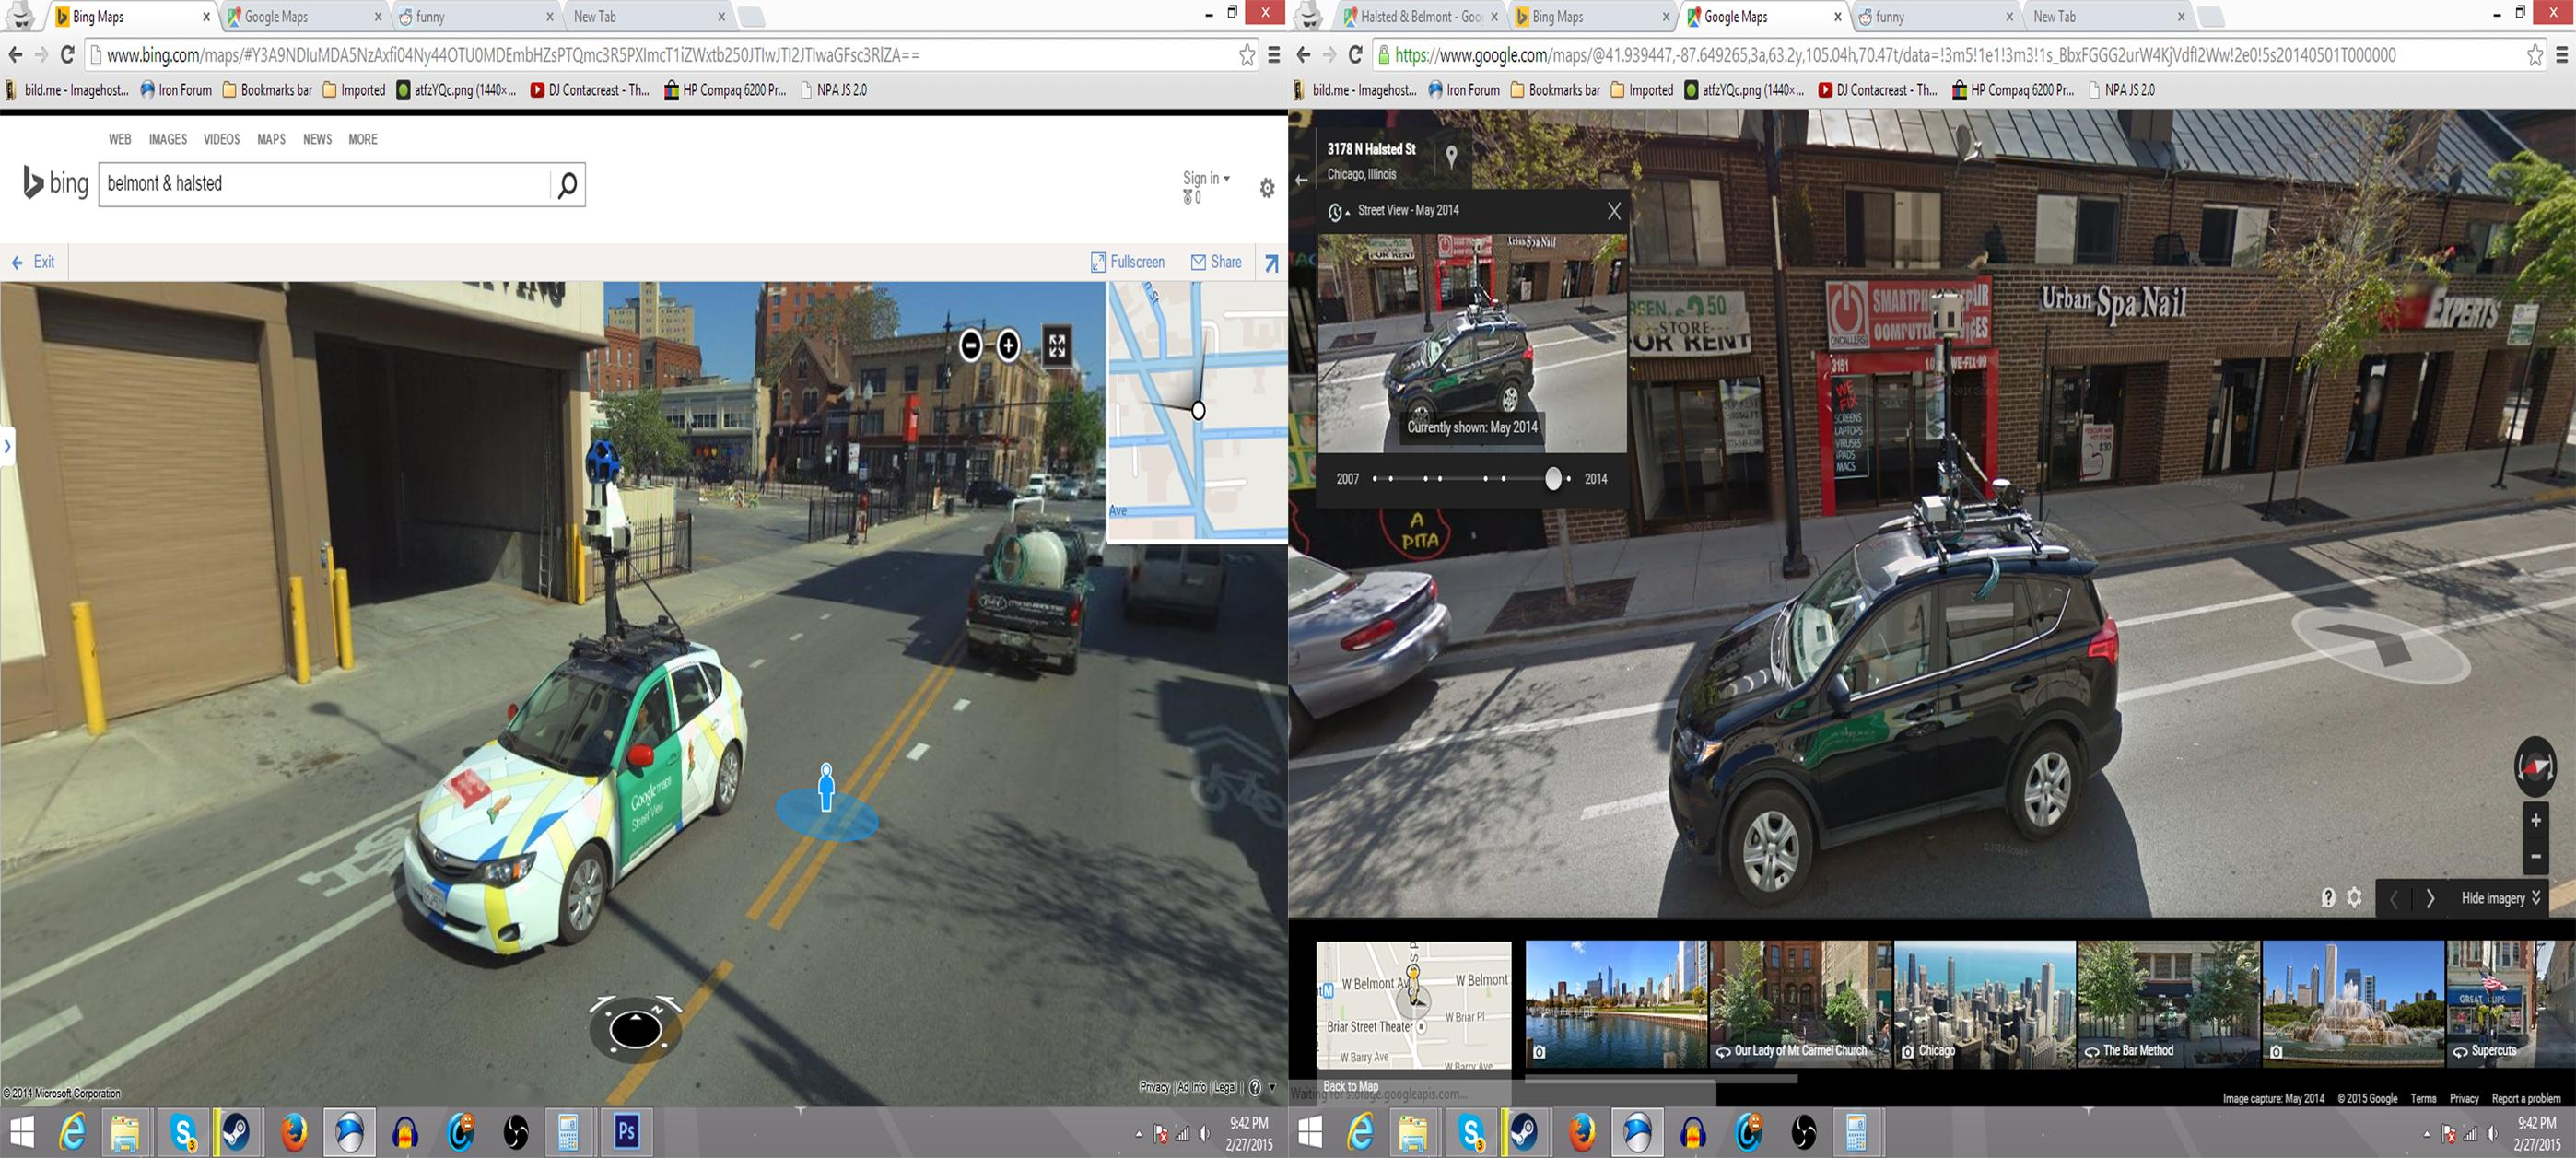 Google Street View and Bing Maps Streetside View collide (sorta)